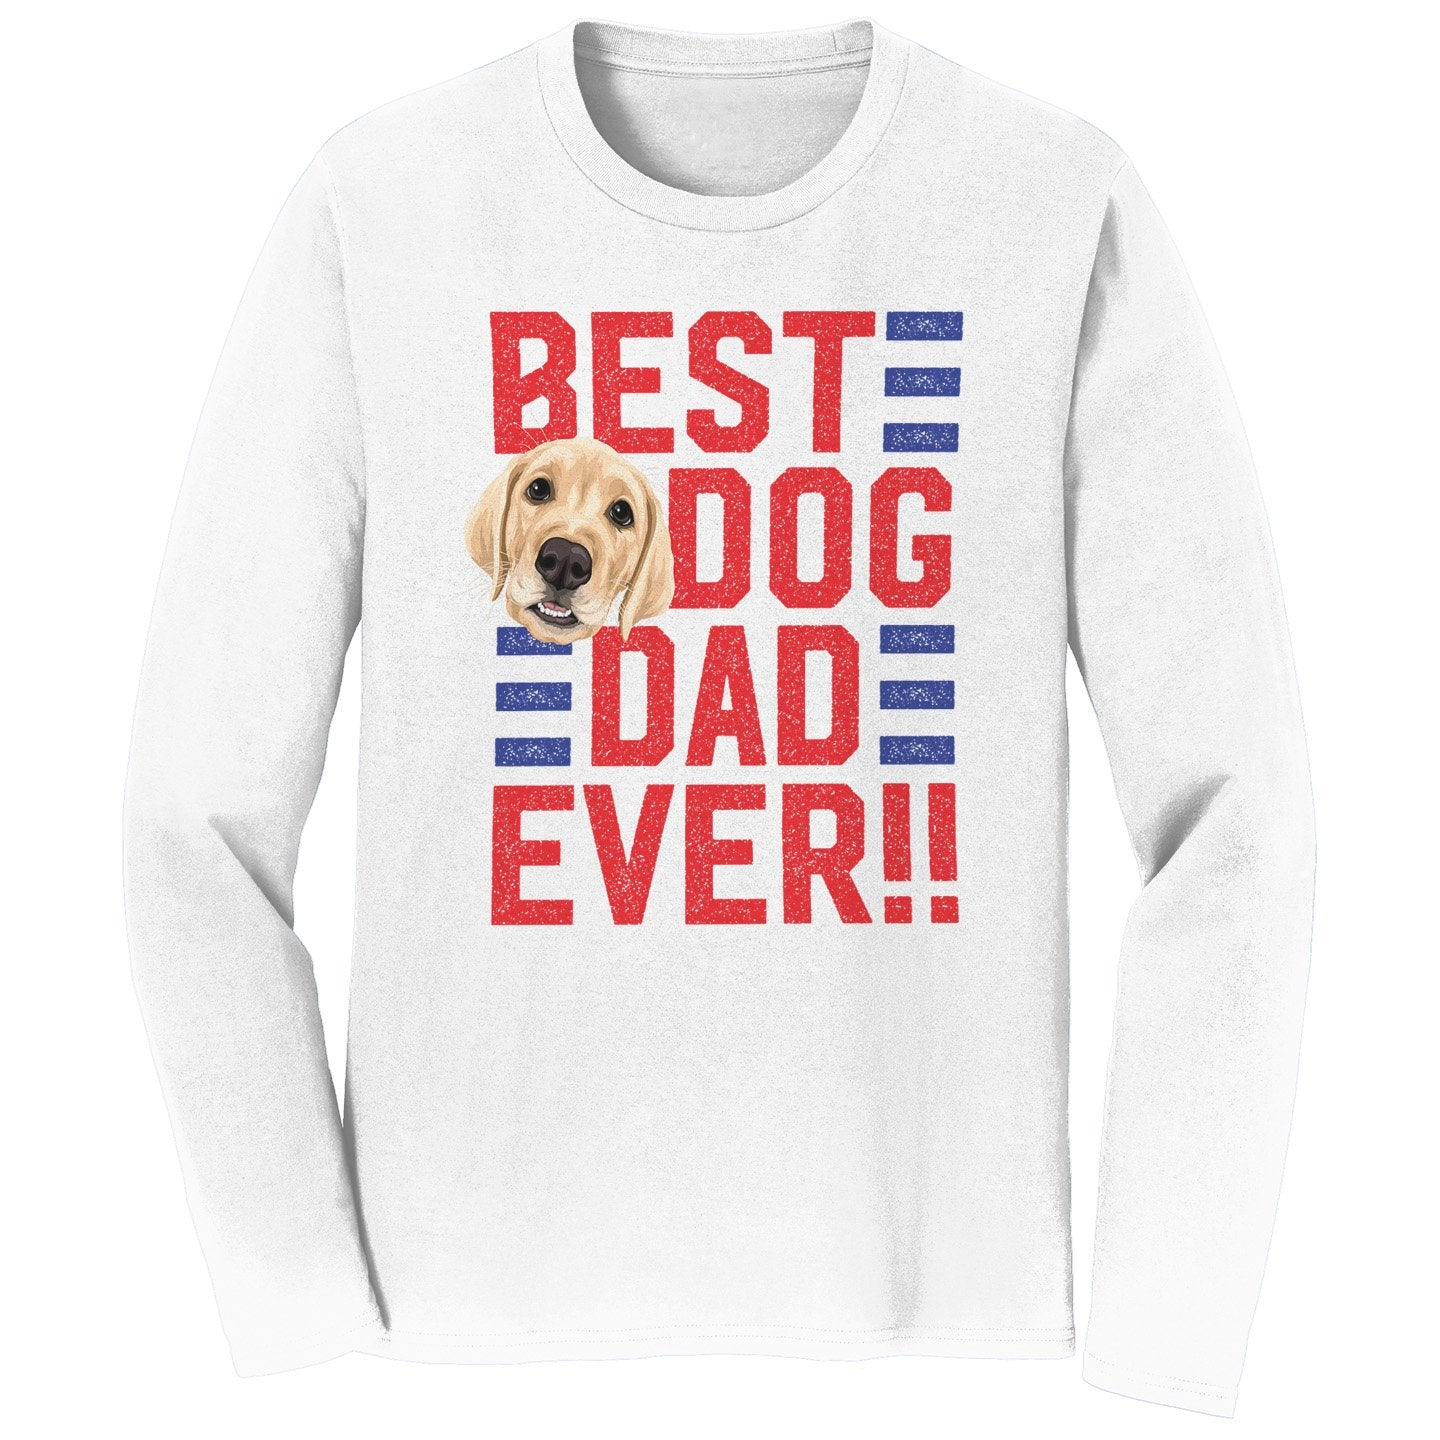 Best Dog Dad Ever - Adult Unisex Long Sleeve T-Shirt - Labradors.com